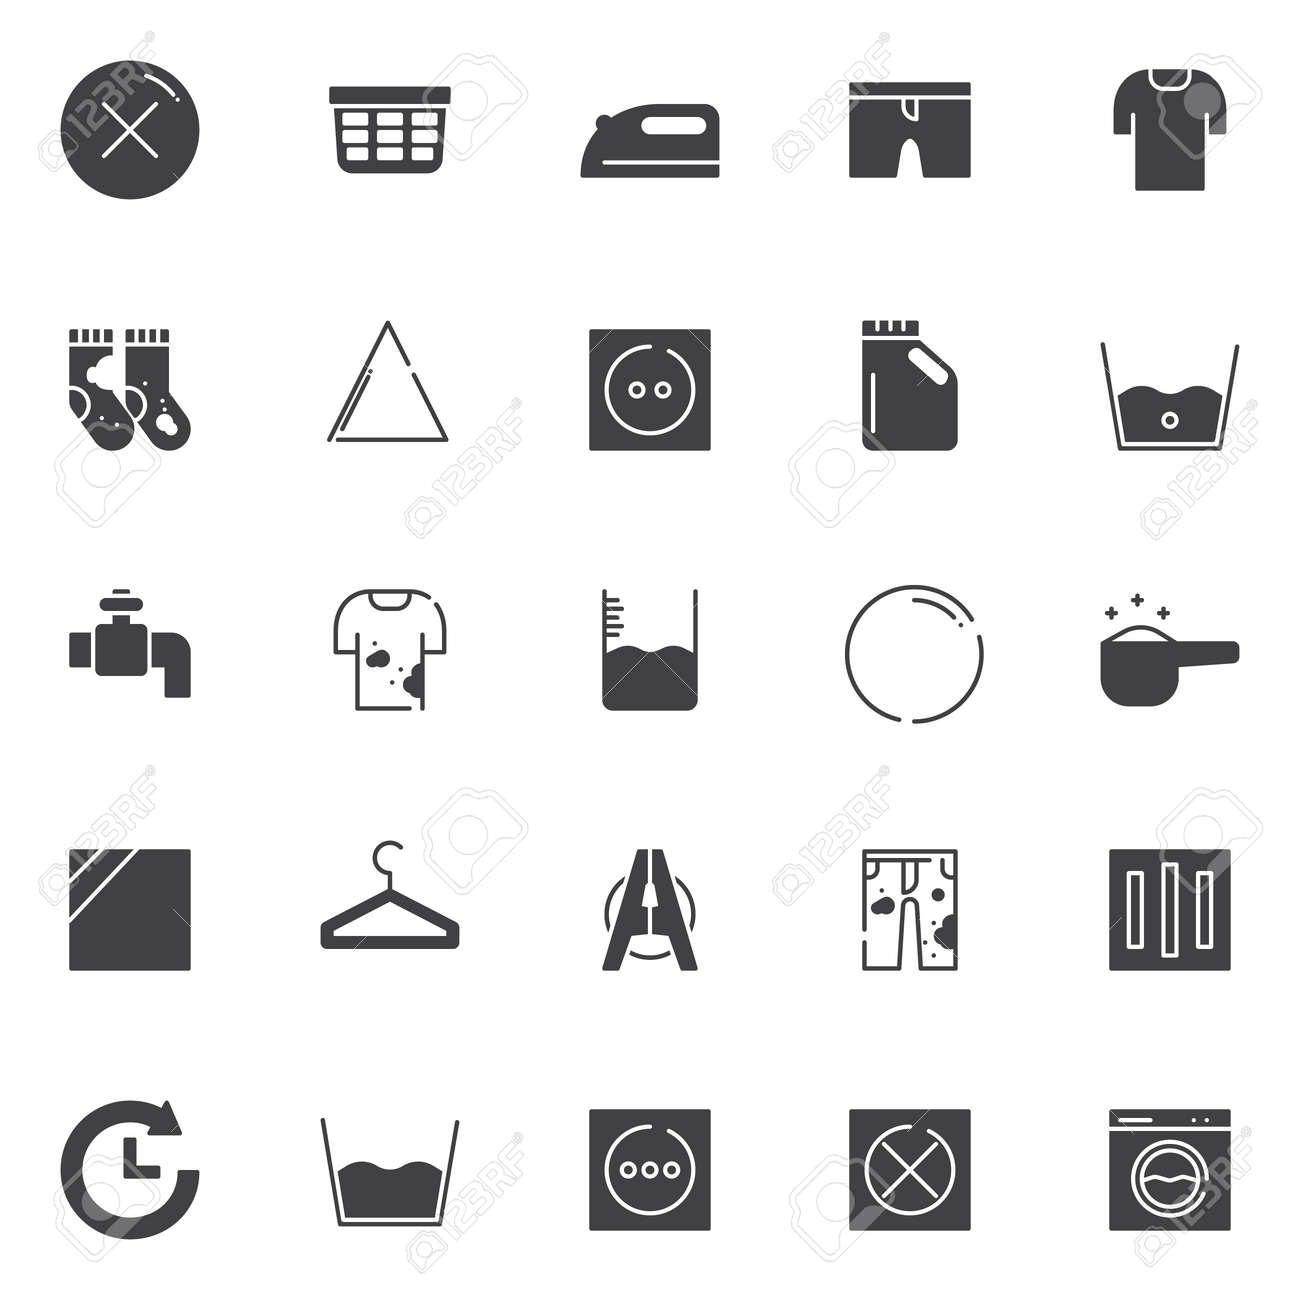 Laundry Vector Icons Set Modern Solid Symbol Collection Filled